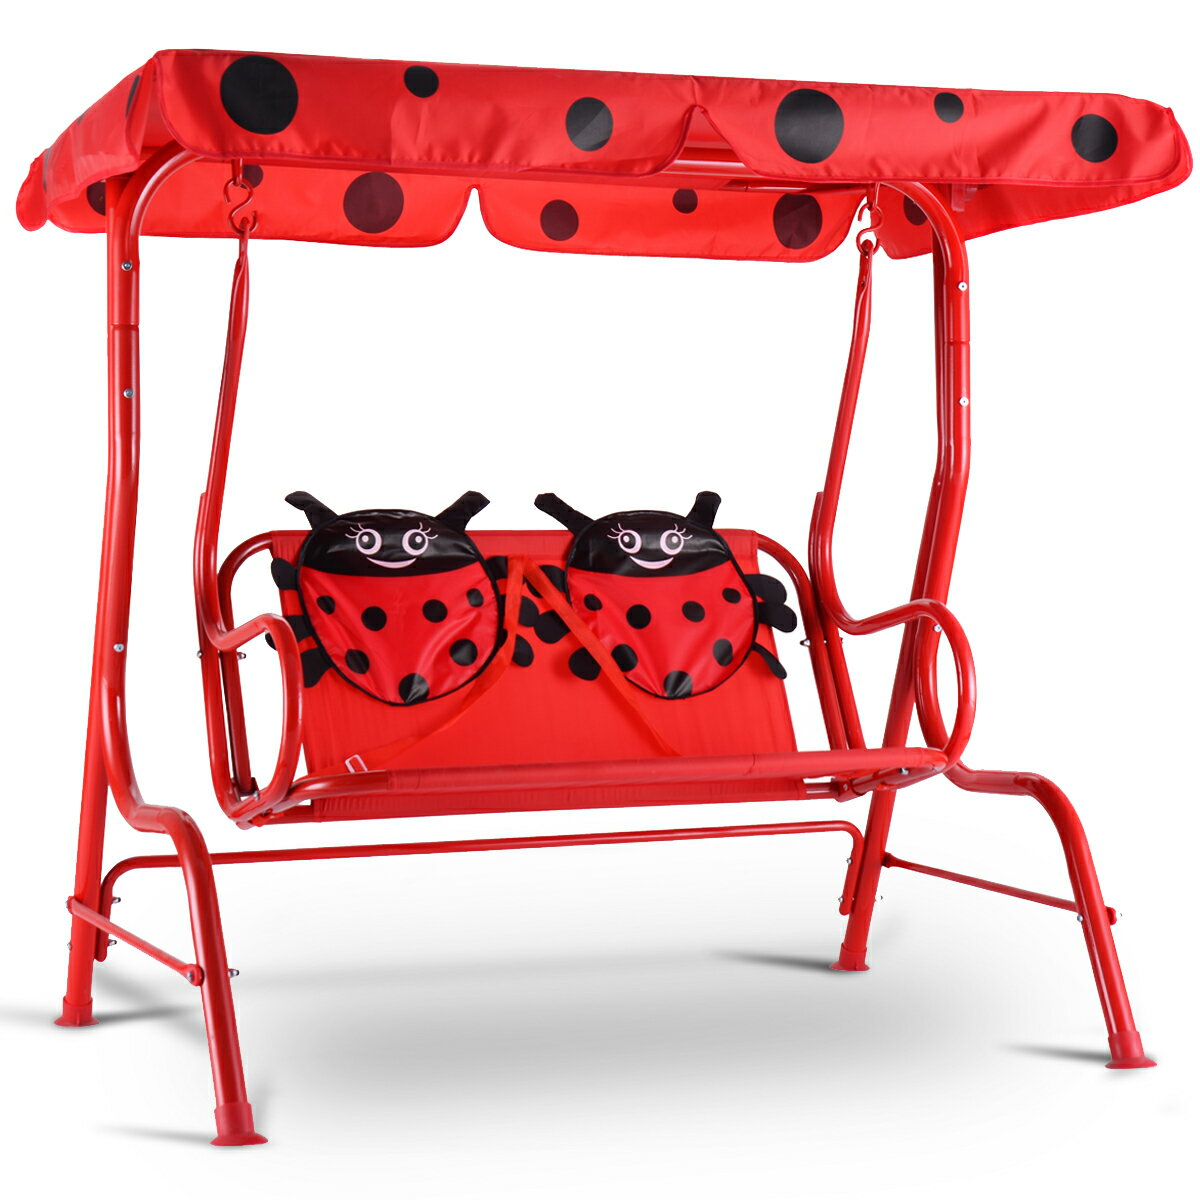 Costway Kids Patio Swing Chair Children Porch Bench Canopy 2 Person Yard  Furniture Red 0